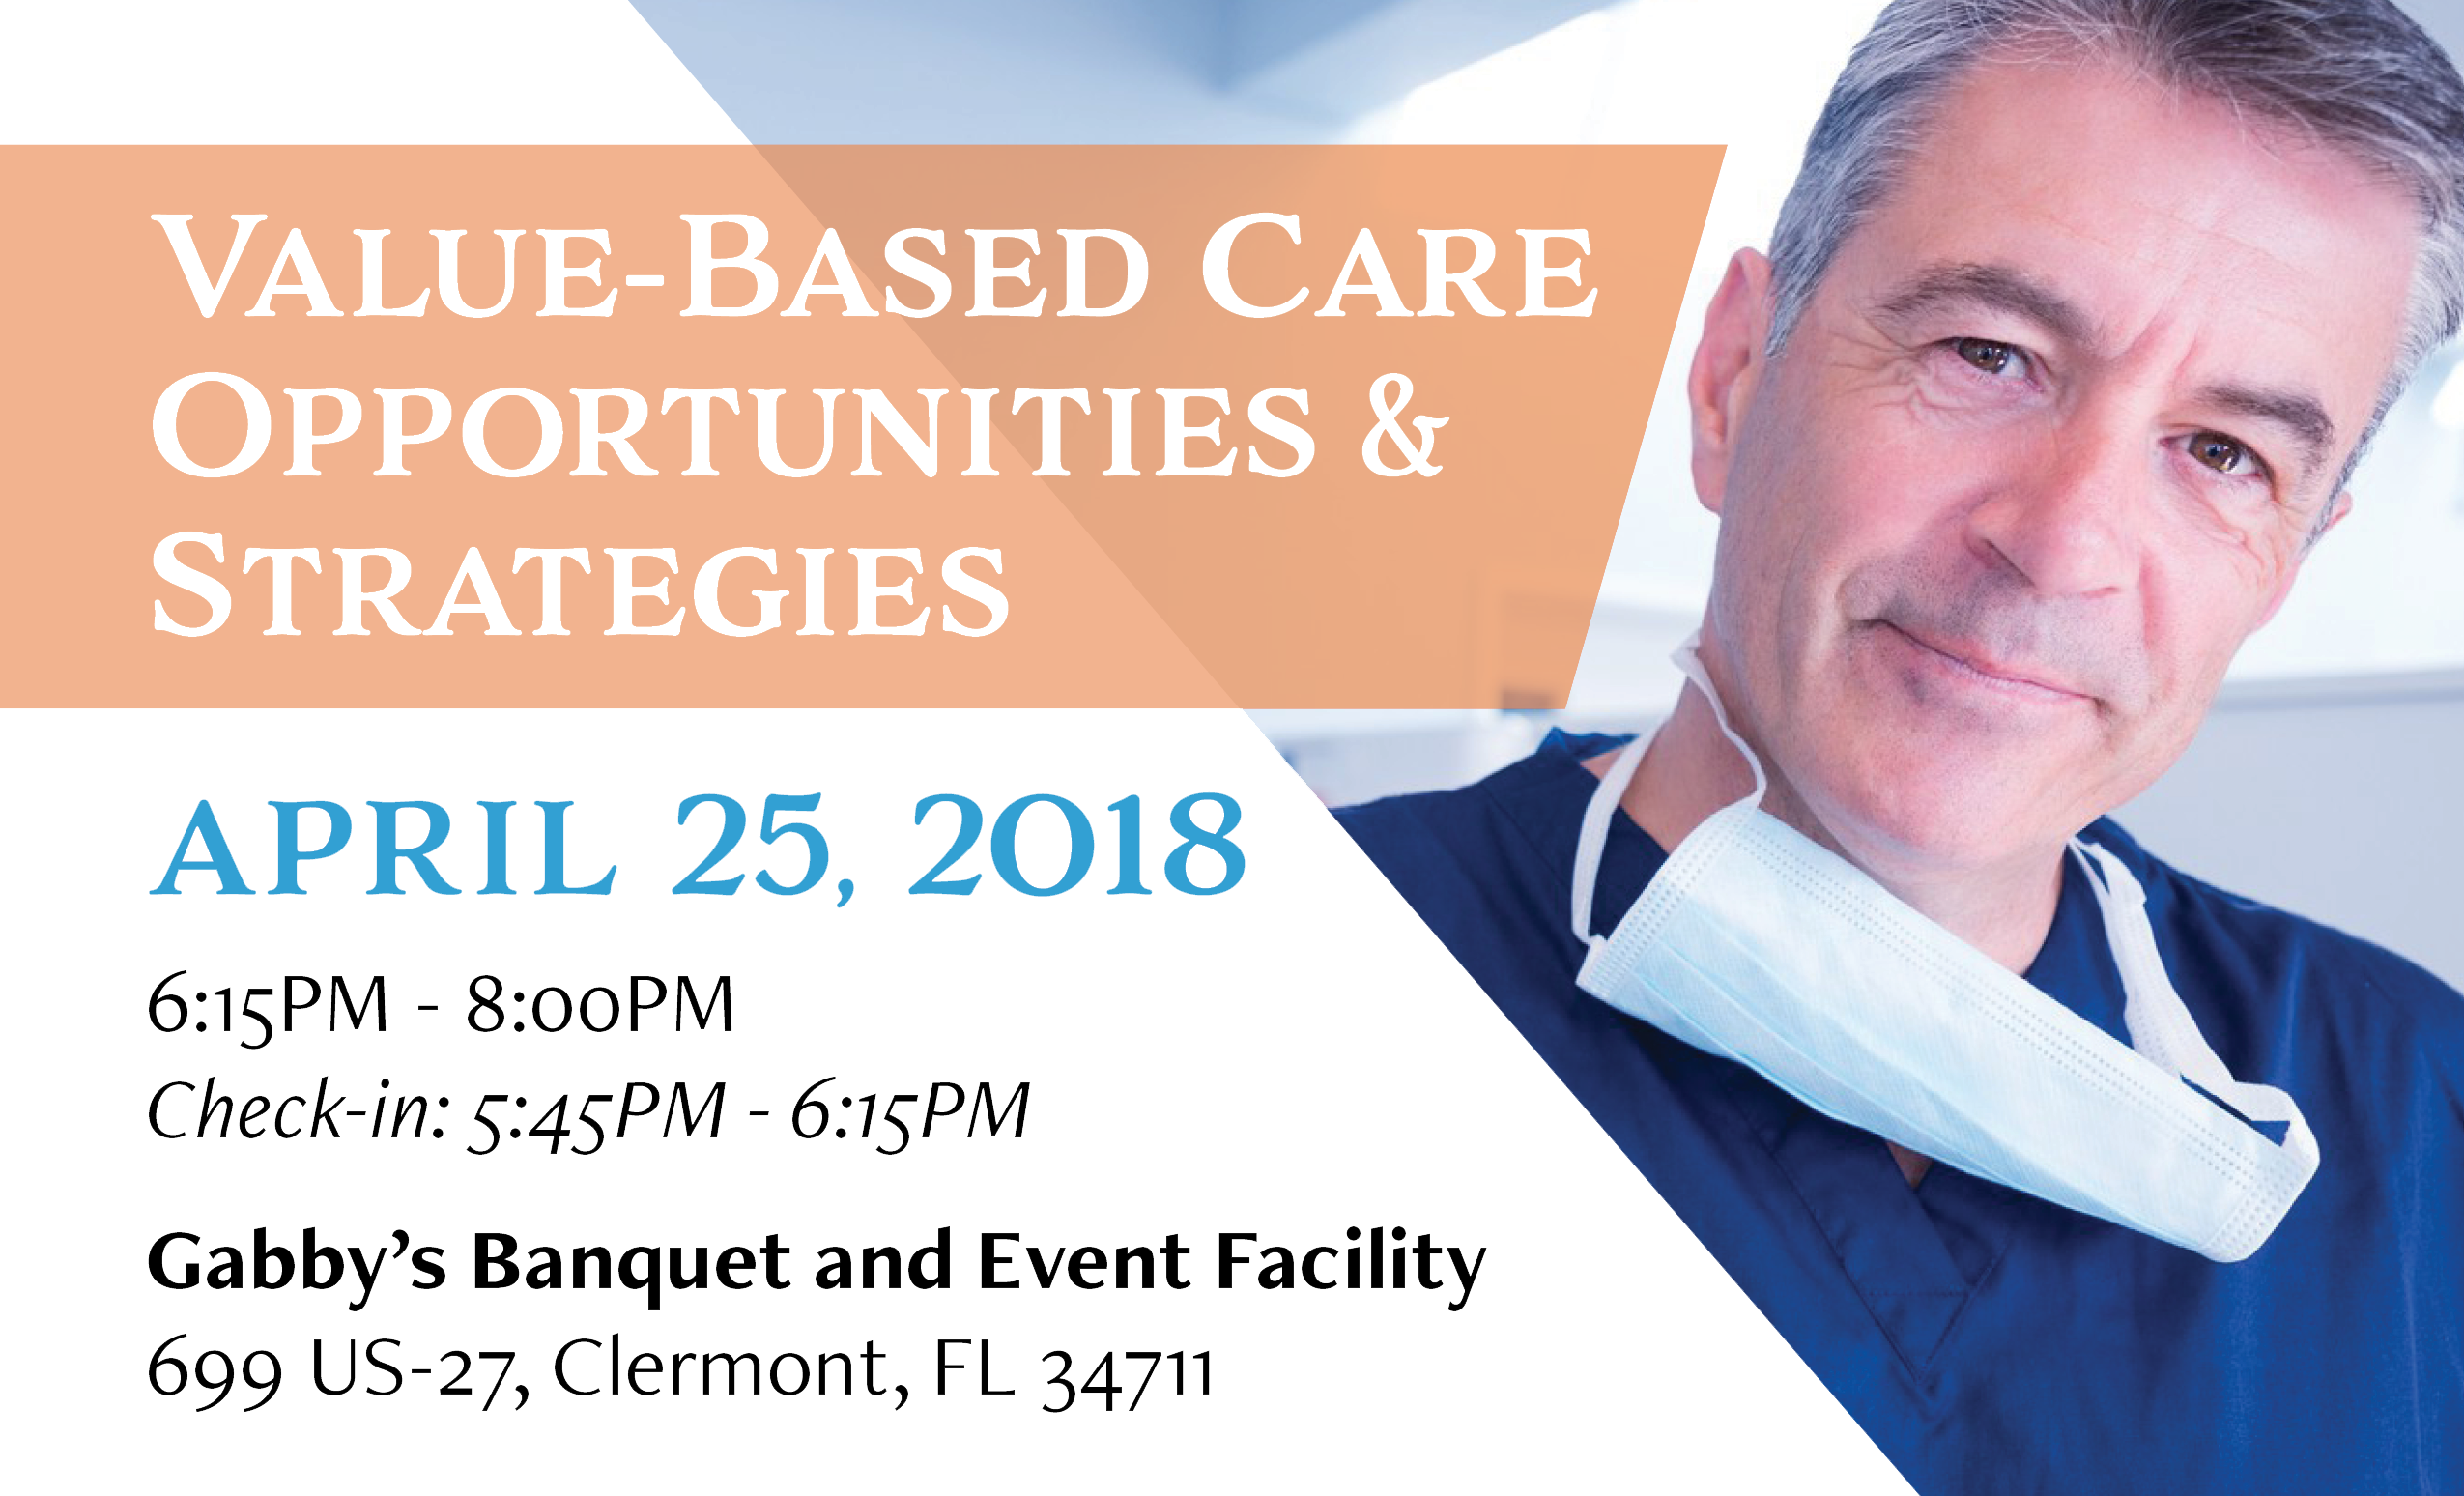 Value-Based Care Opportunities & Strategies: Apr 25, 2018